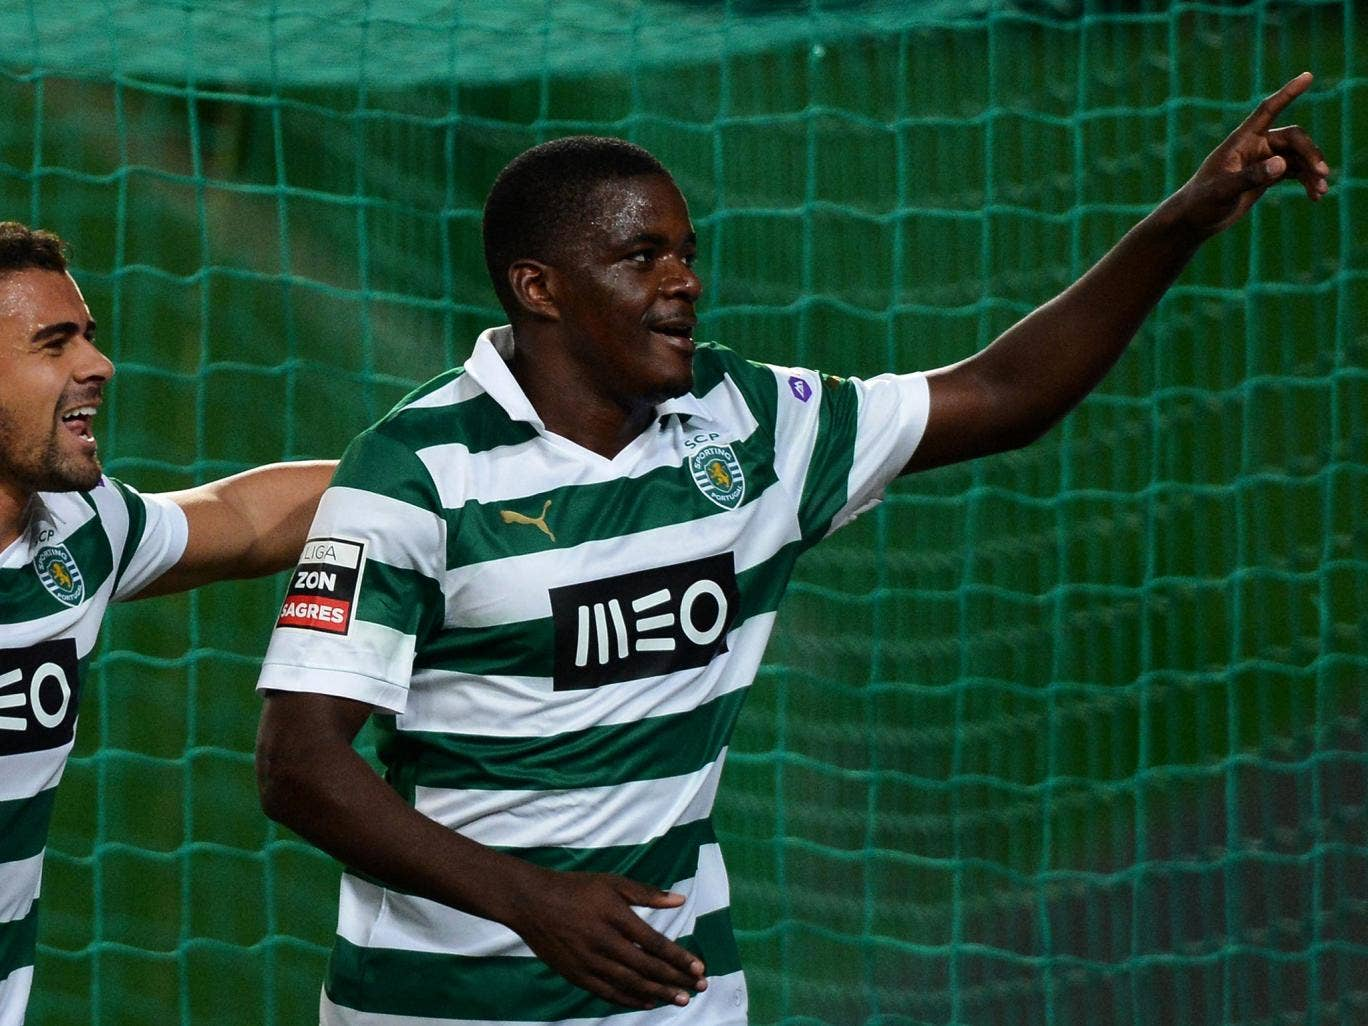 Sporting Lisbon midfielder Willian Carvalho is a transfer target for Manchester United, though the £29m asking price remains a stumbling block